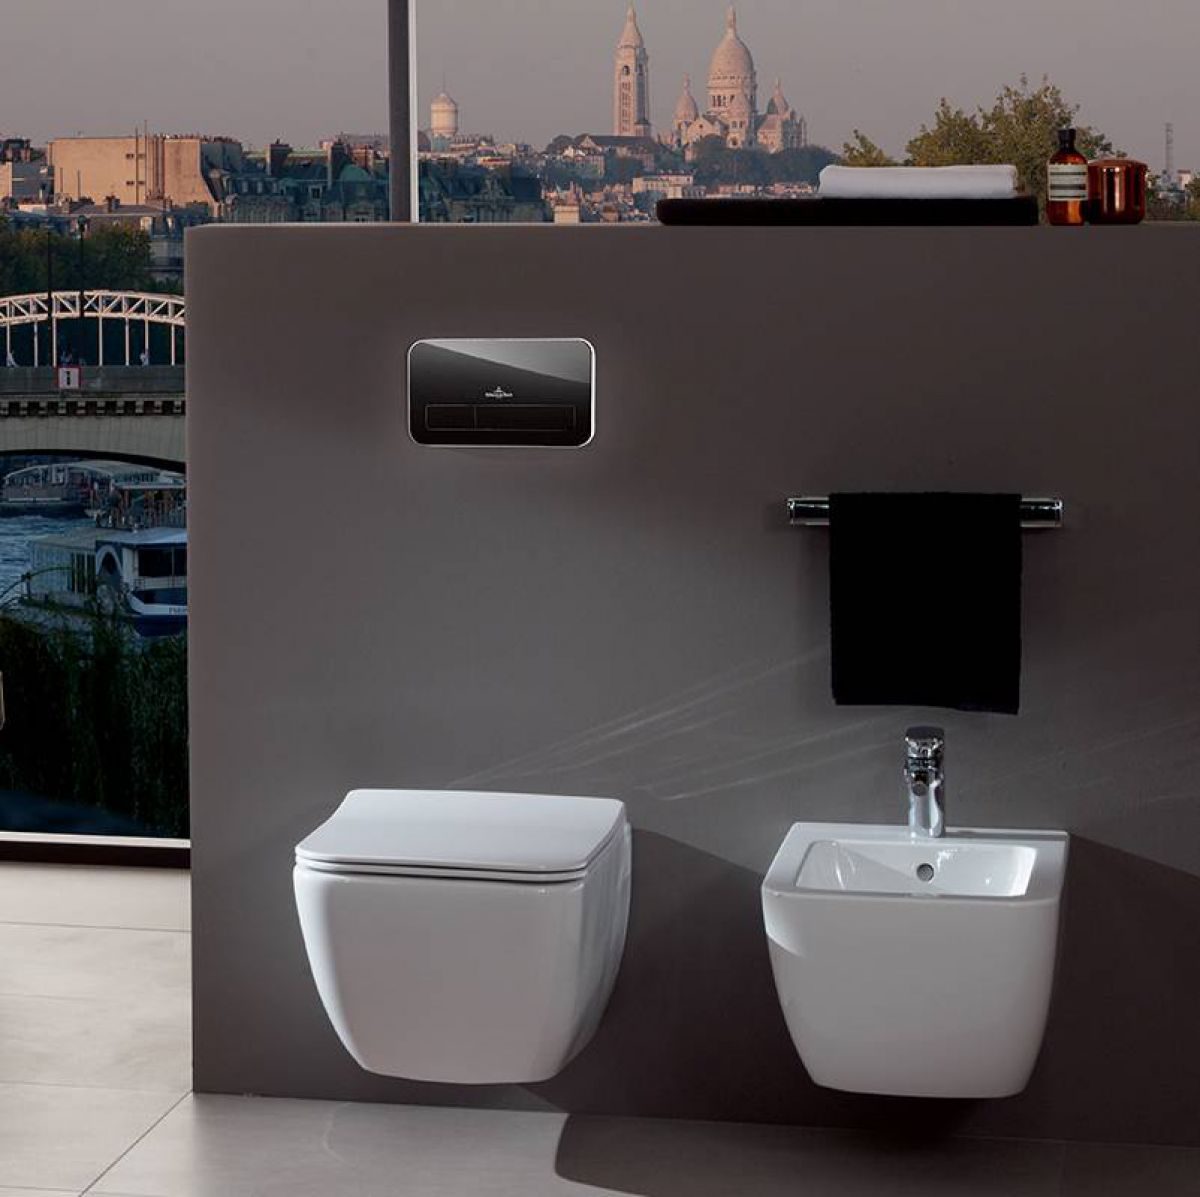 Gallery of square front toilet seat